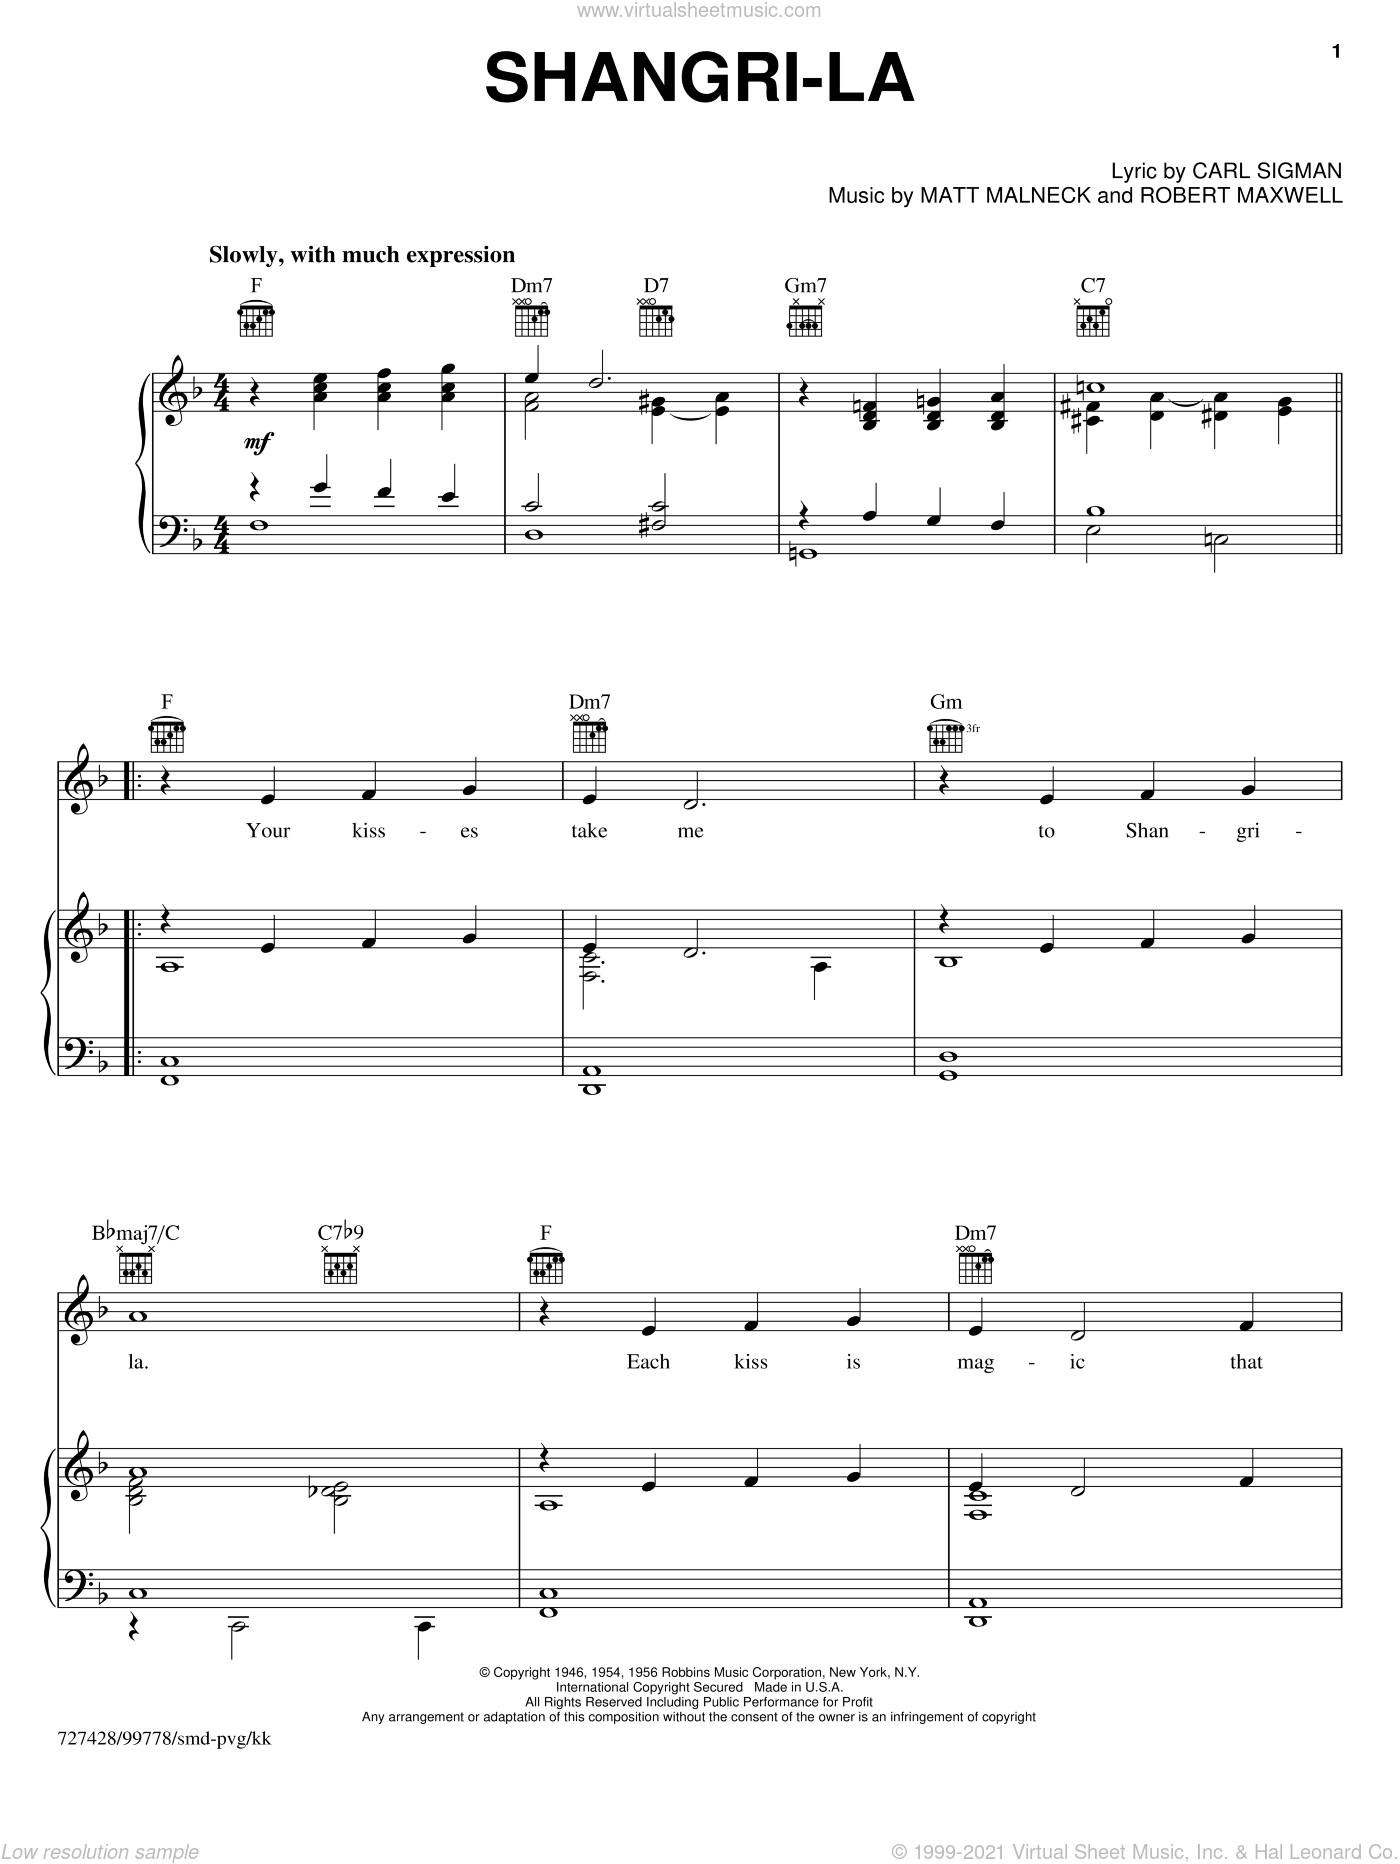 Shangri-la sheet music for voice, piano or guitar by Carl Sigman, Matt Malneck and Robert Maxwell. Score Image Preview.